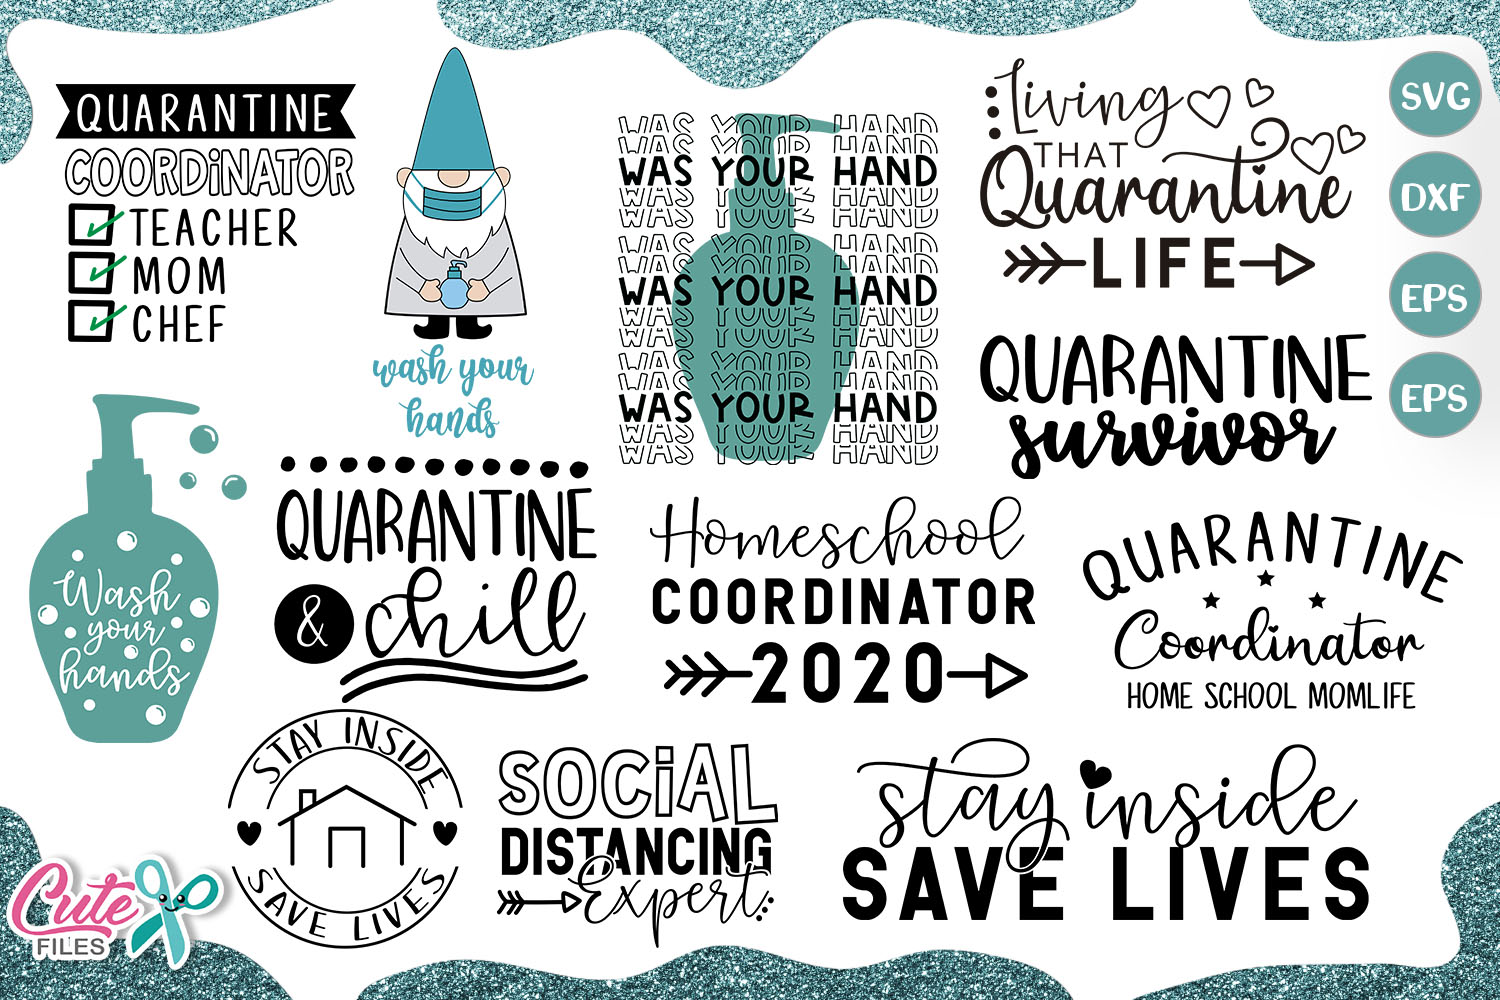 Download Free Quarantine Life Bundle Graphic By Cute Files Creative Fabrica for Cricut Explore, Silhouette and other cutting machines.